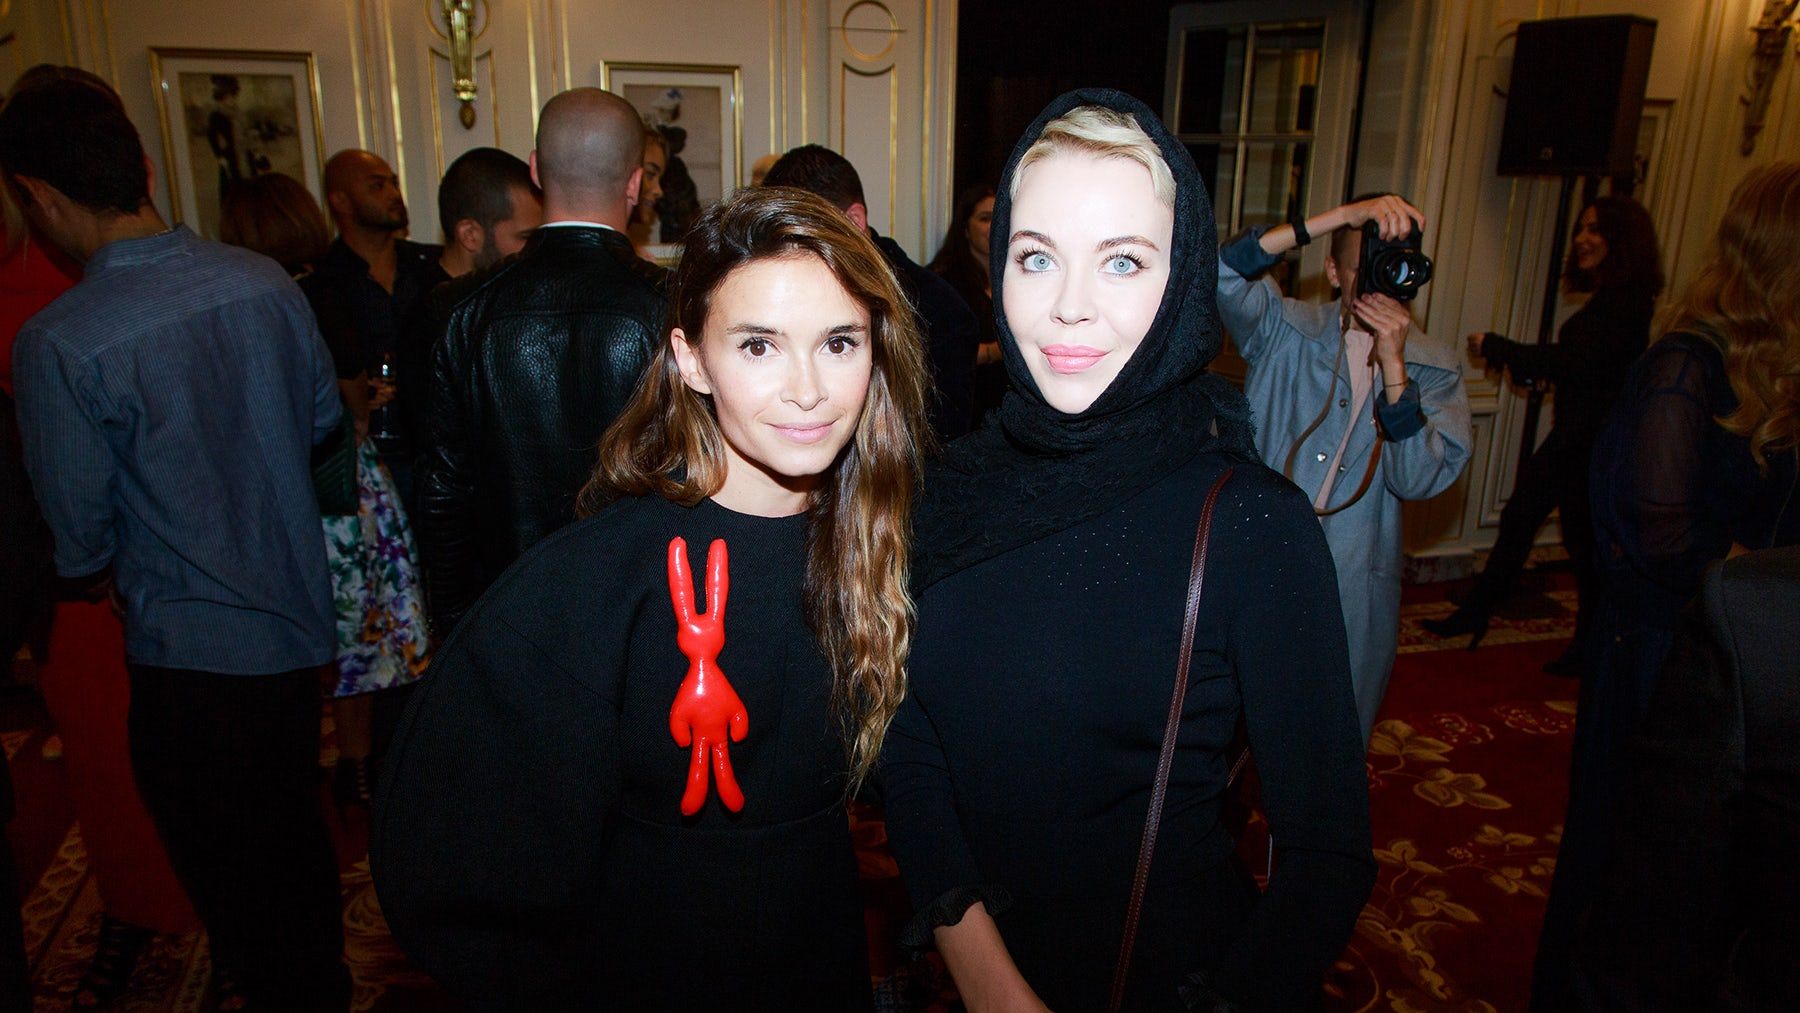 Miroslava Duma and Ulyana Sergeenko | Source: Getty